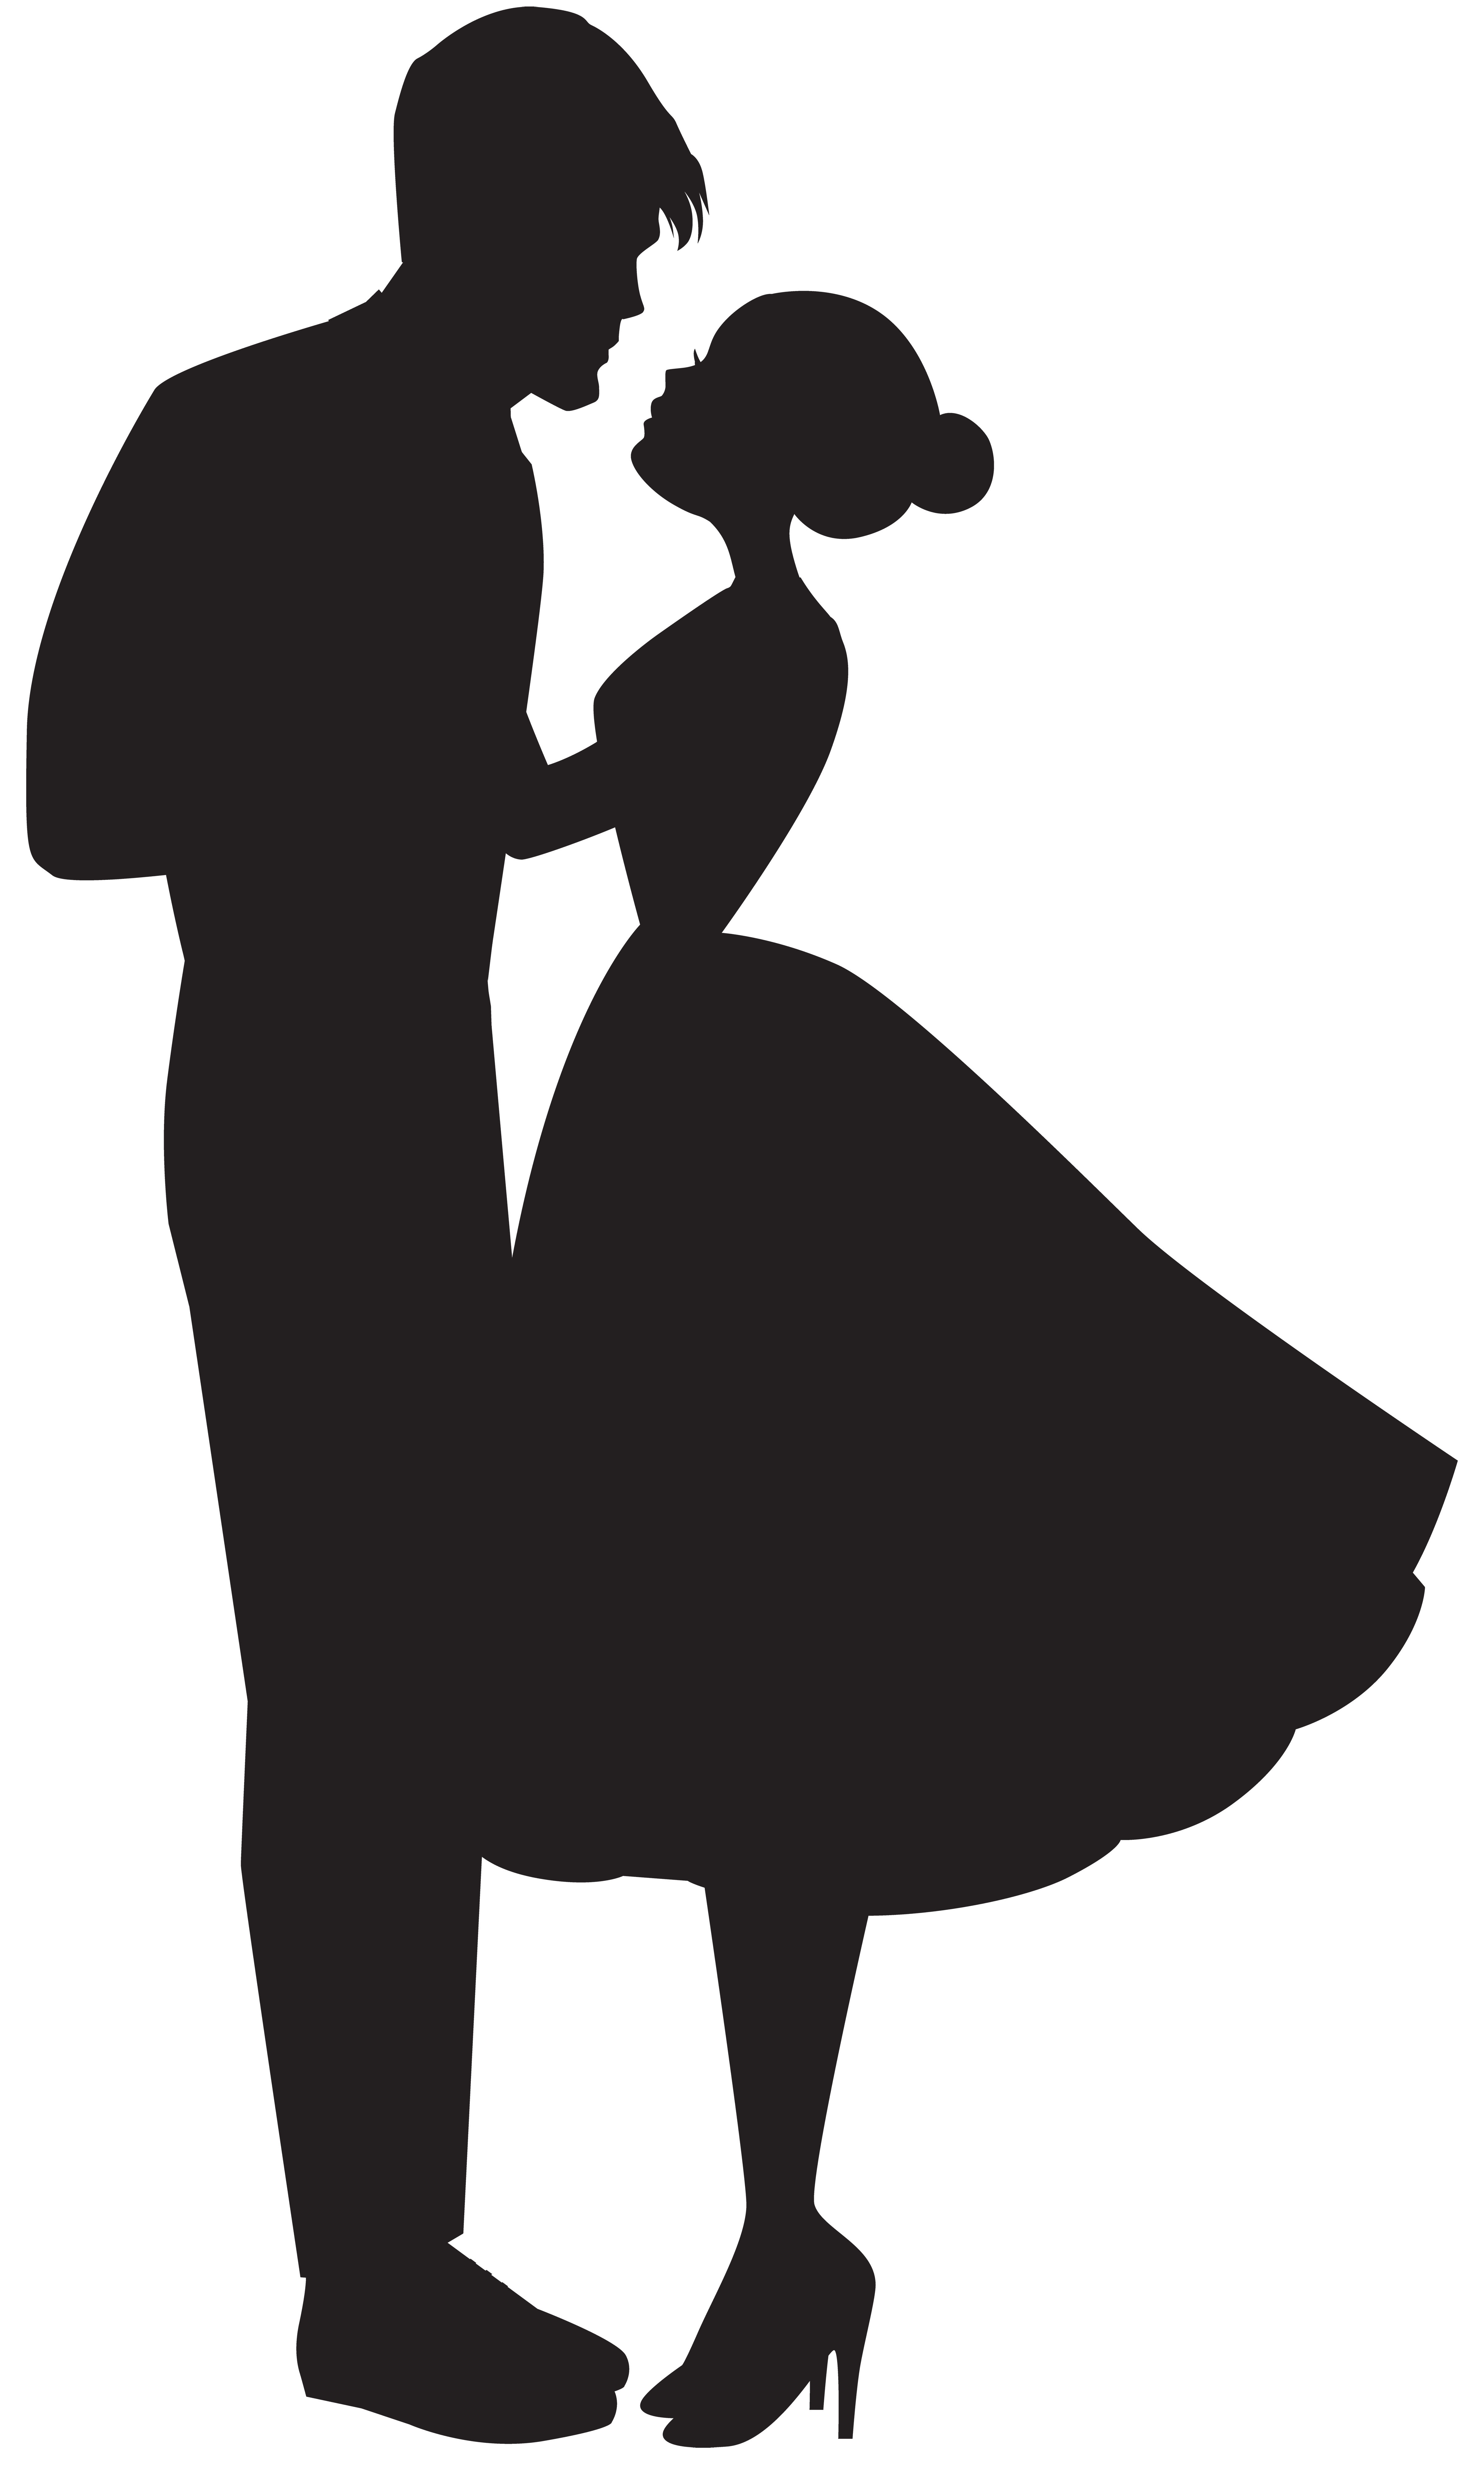 Couple in love png. Silhouette clip art gallery